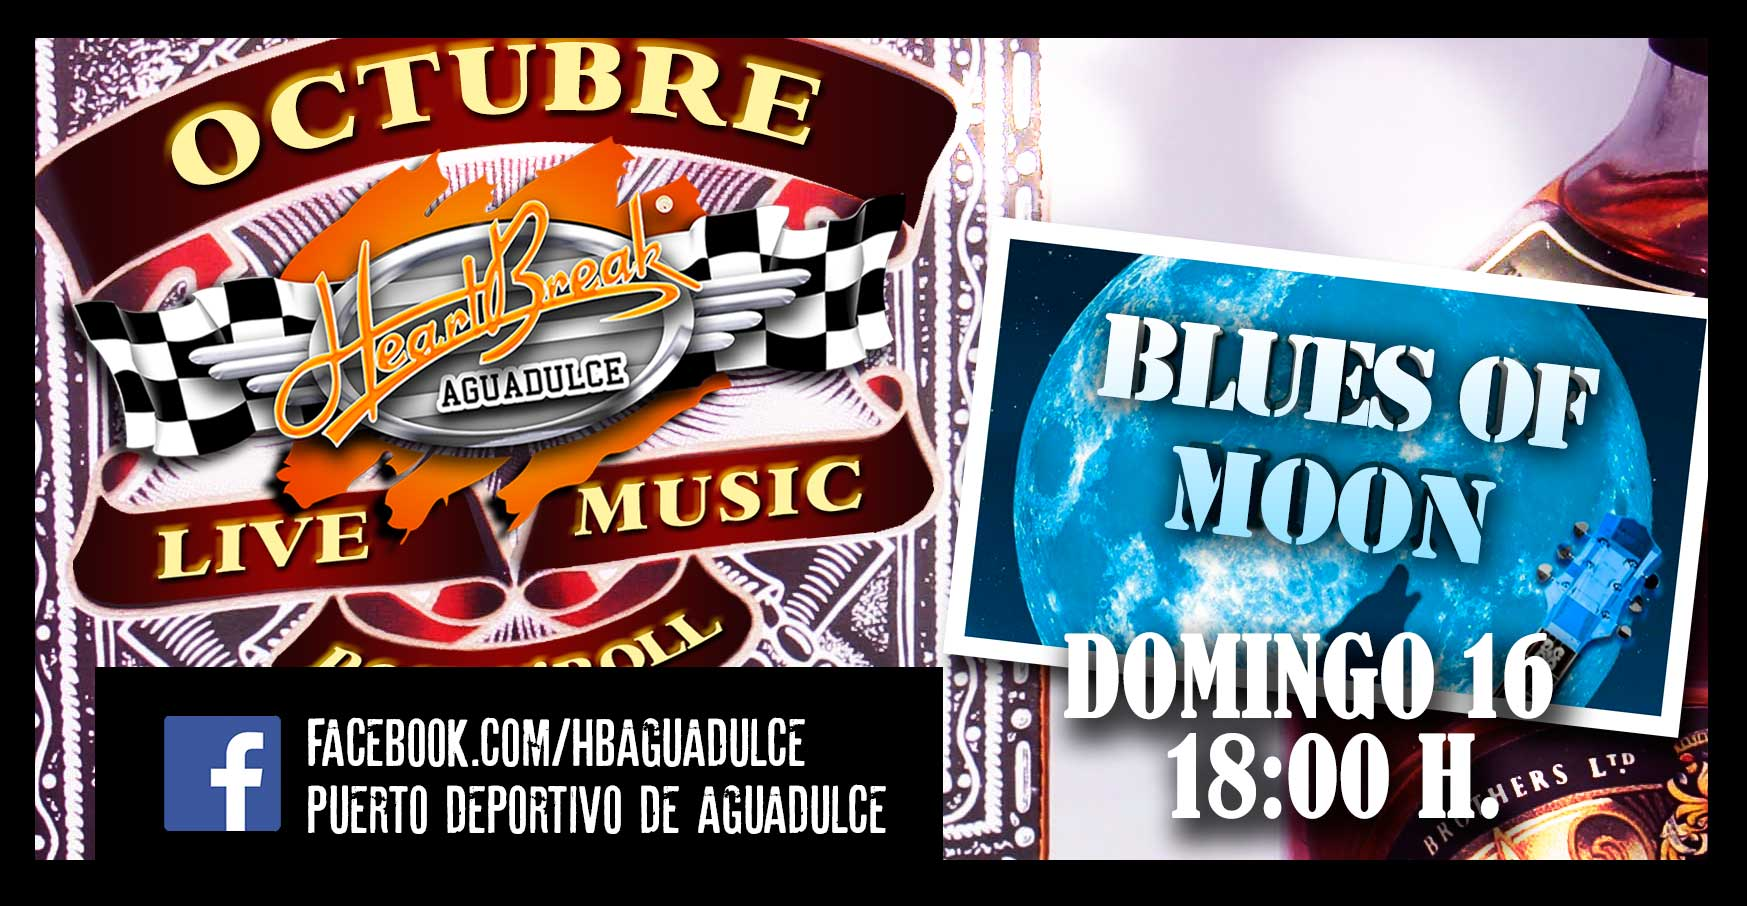 Concierto de Blues of Moon